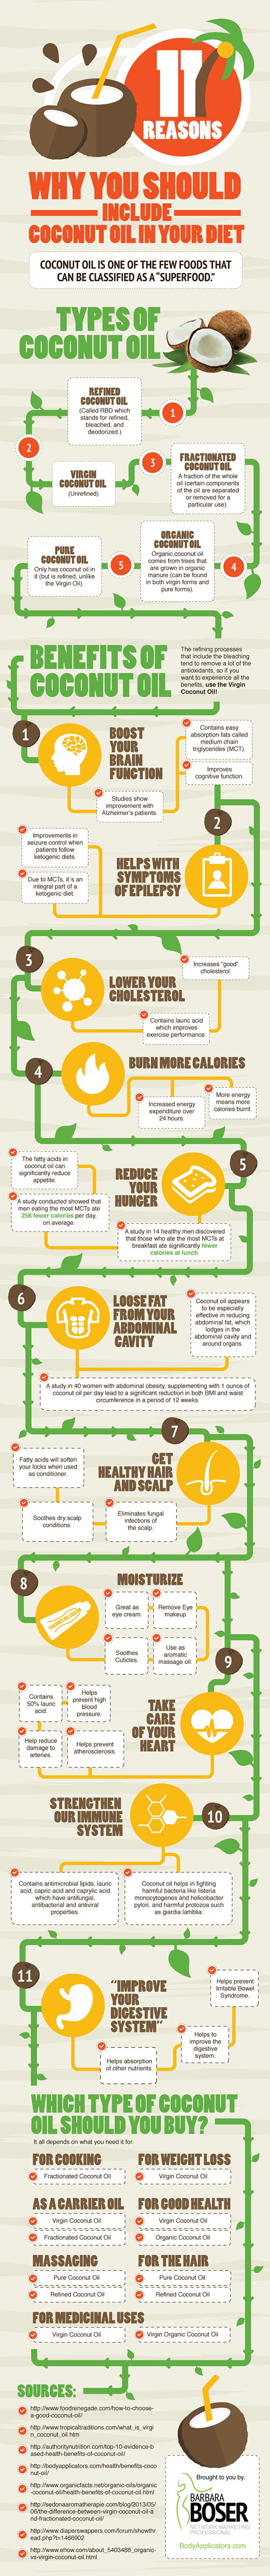 Infographic: 11 Reasons Why you Should Include Coconut Oil in your Diet